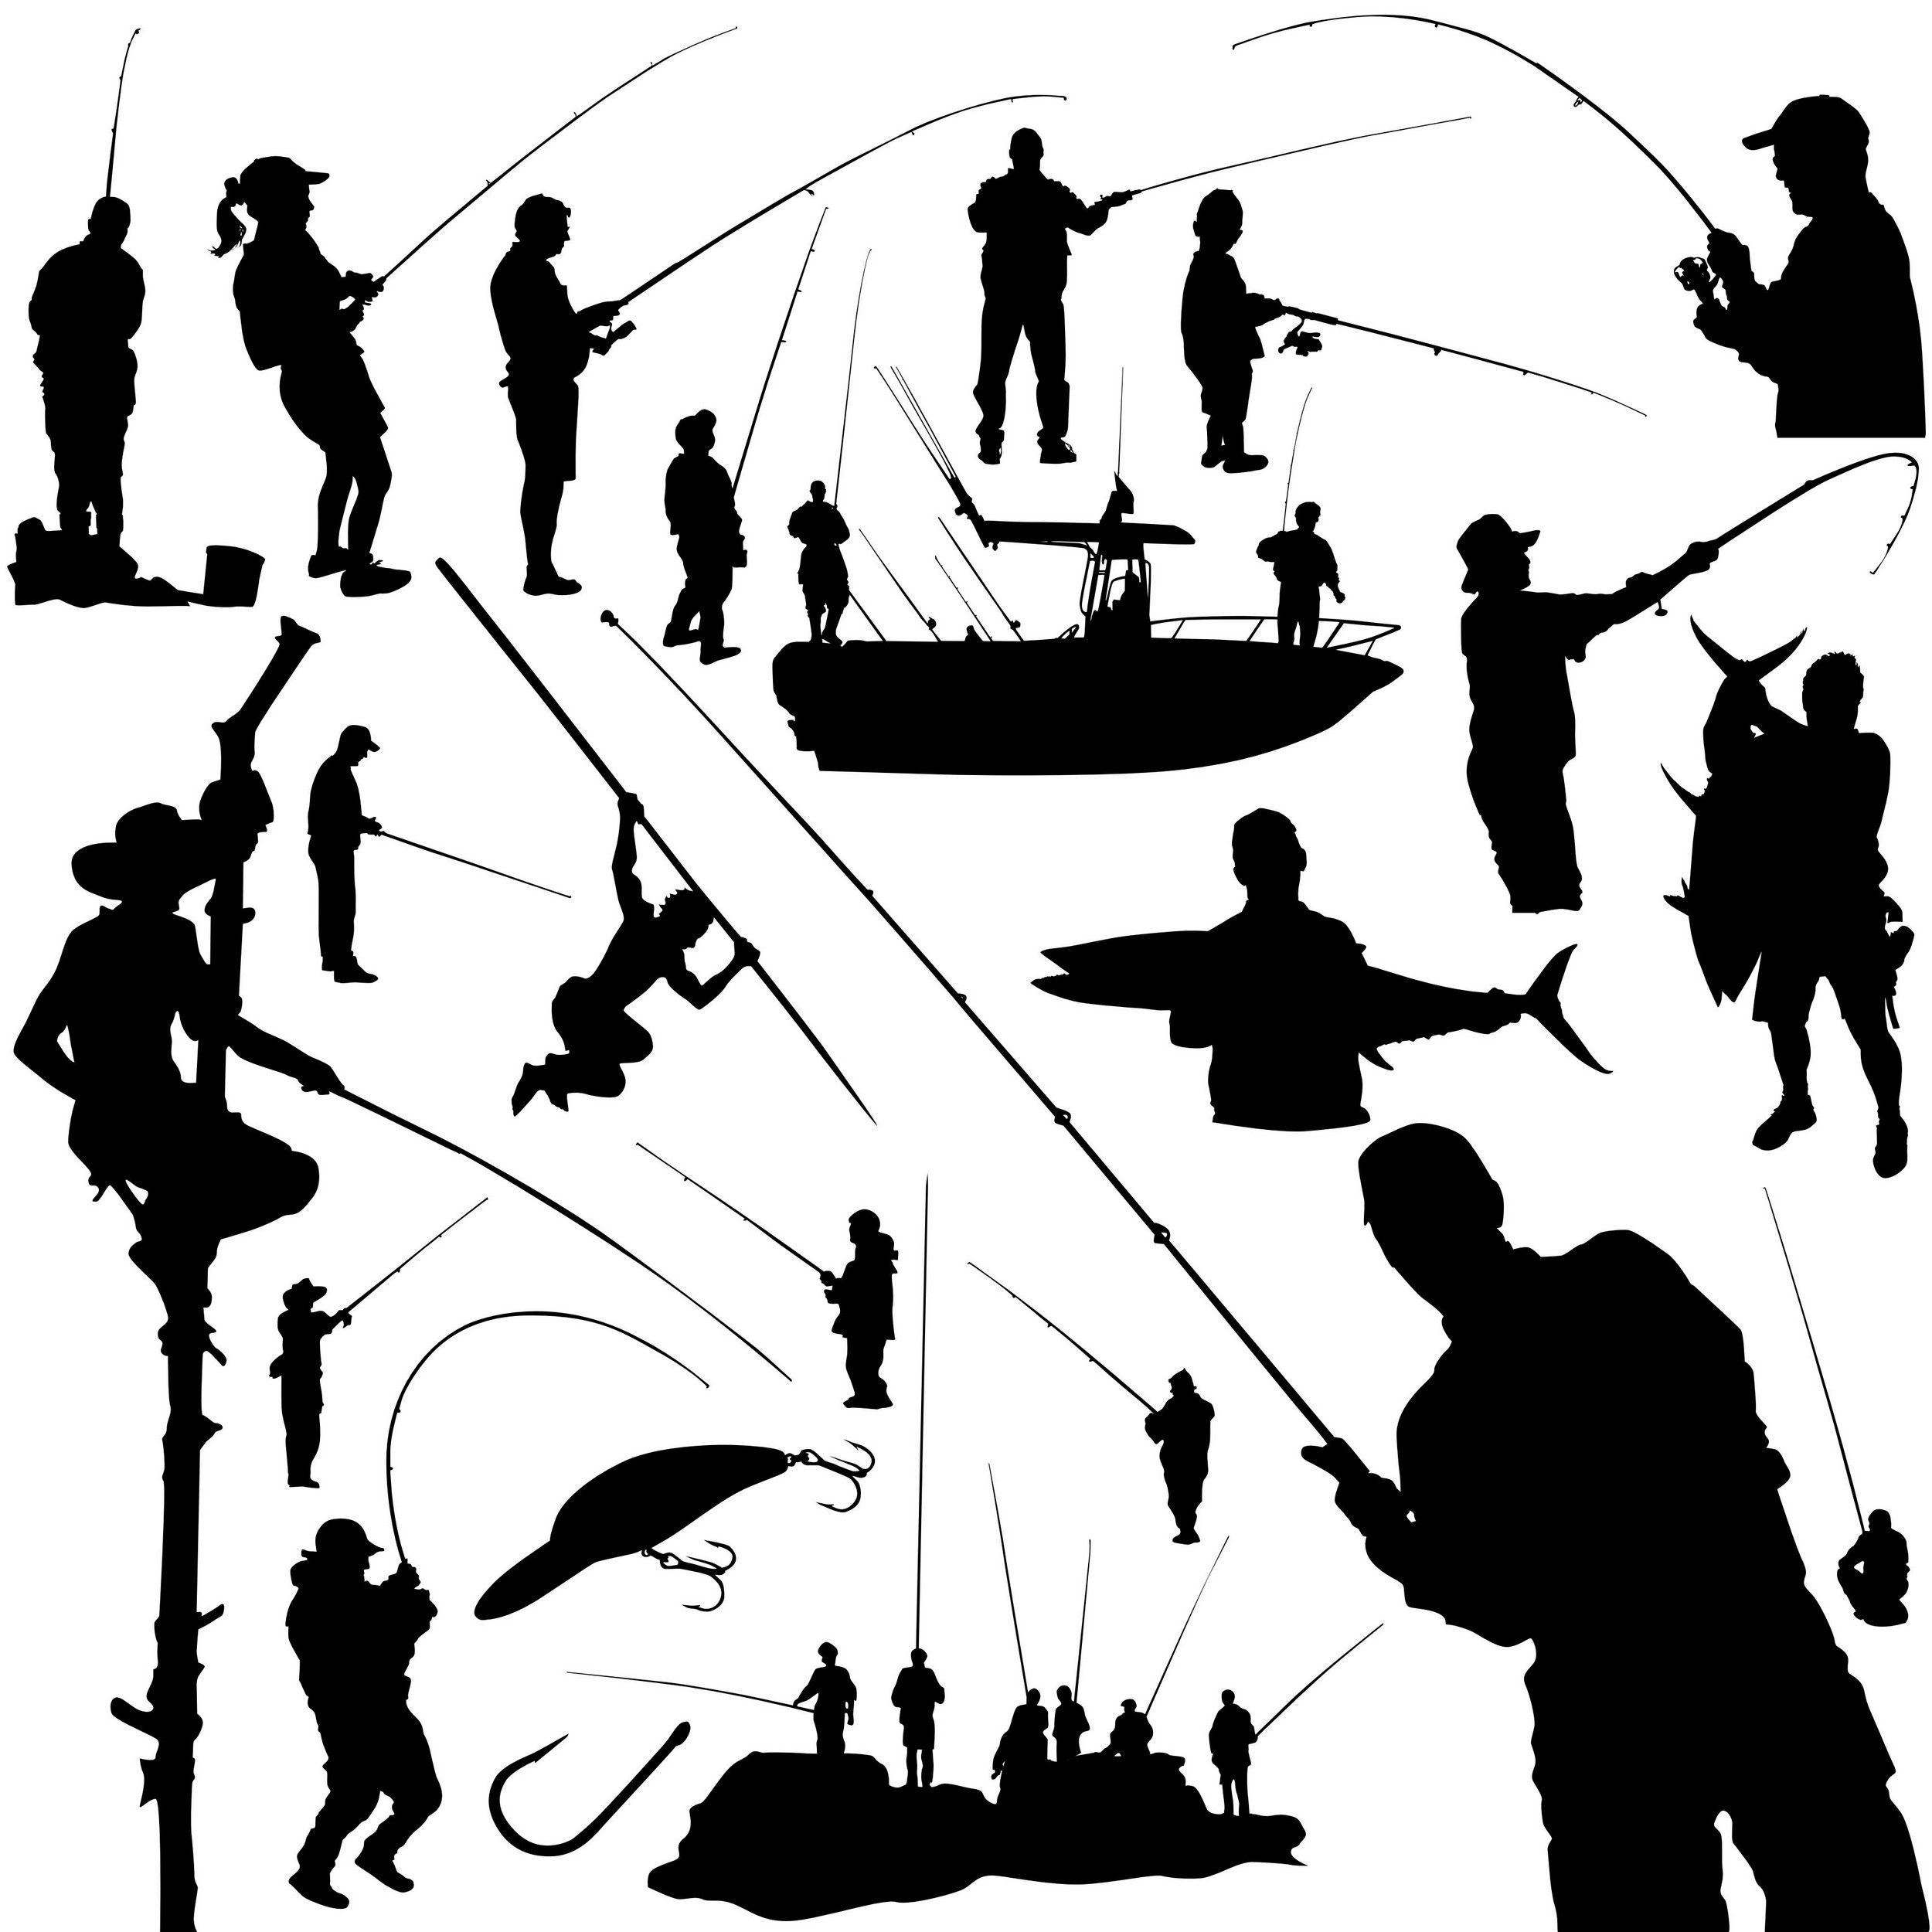 Pin By Joni Carothers On Fisherman Ideas Fish Silhouette Silhouette Vector Silhouette Images